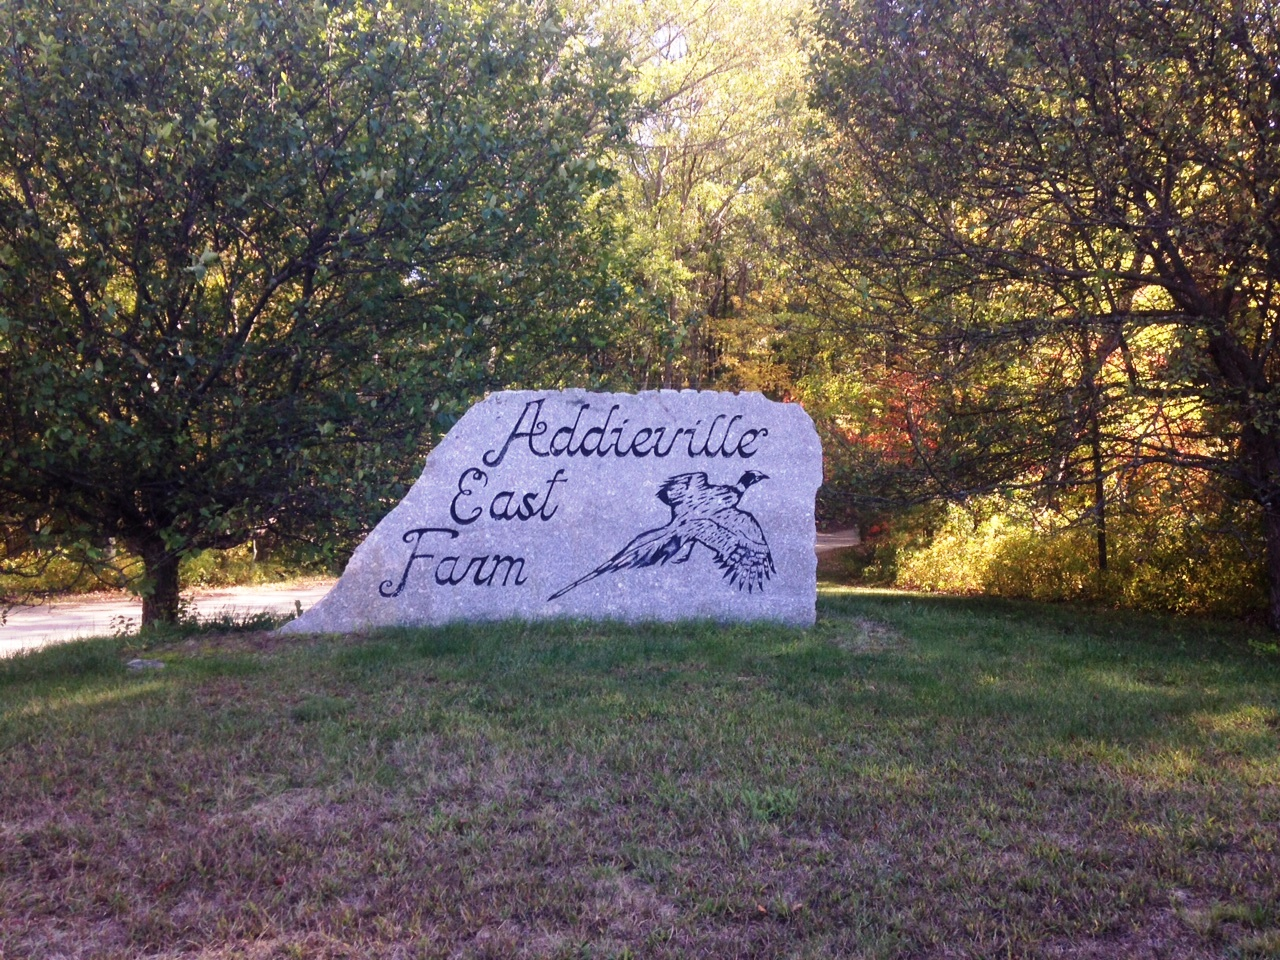 The entrance to Addieville East Farm in Burrillville Rhode Island